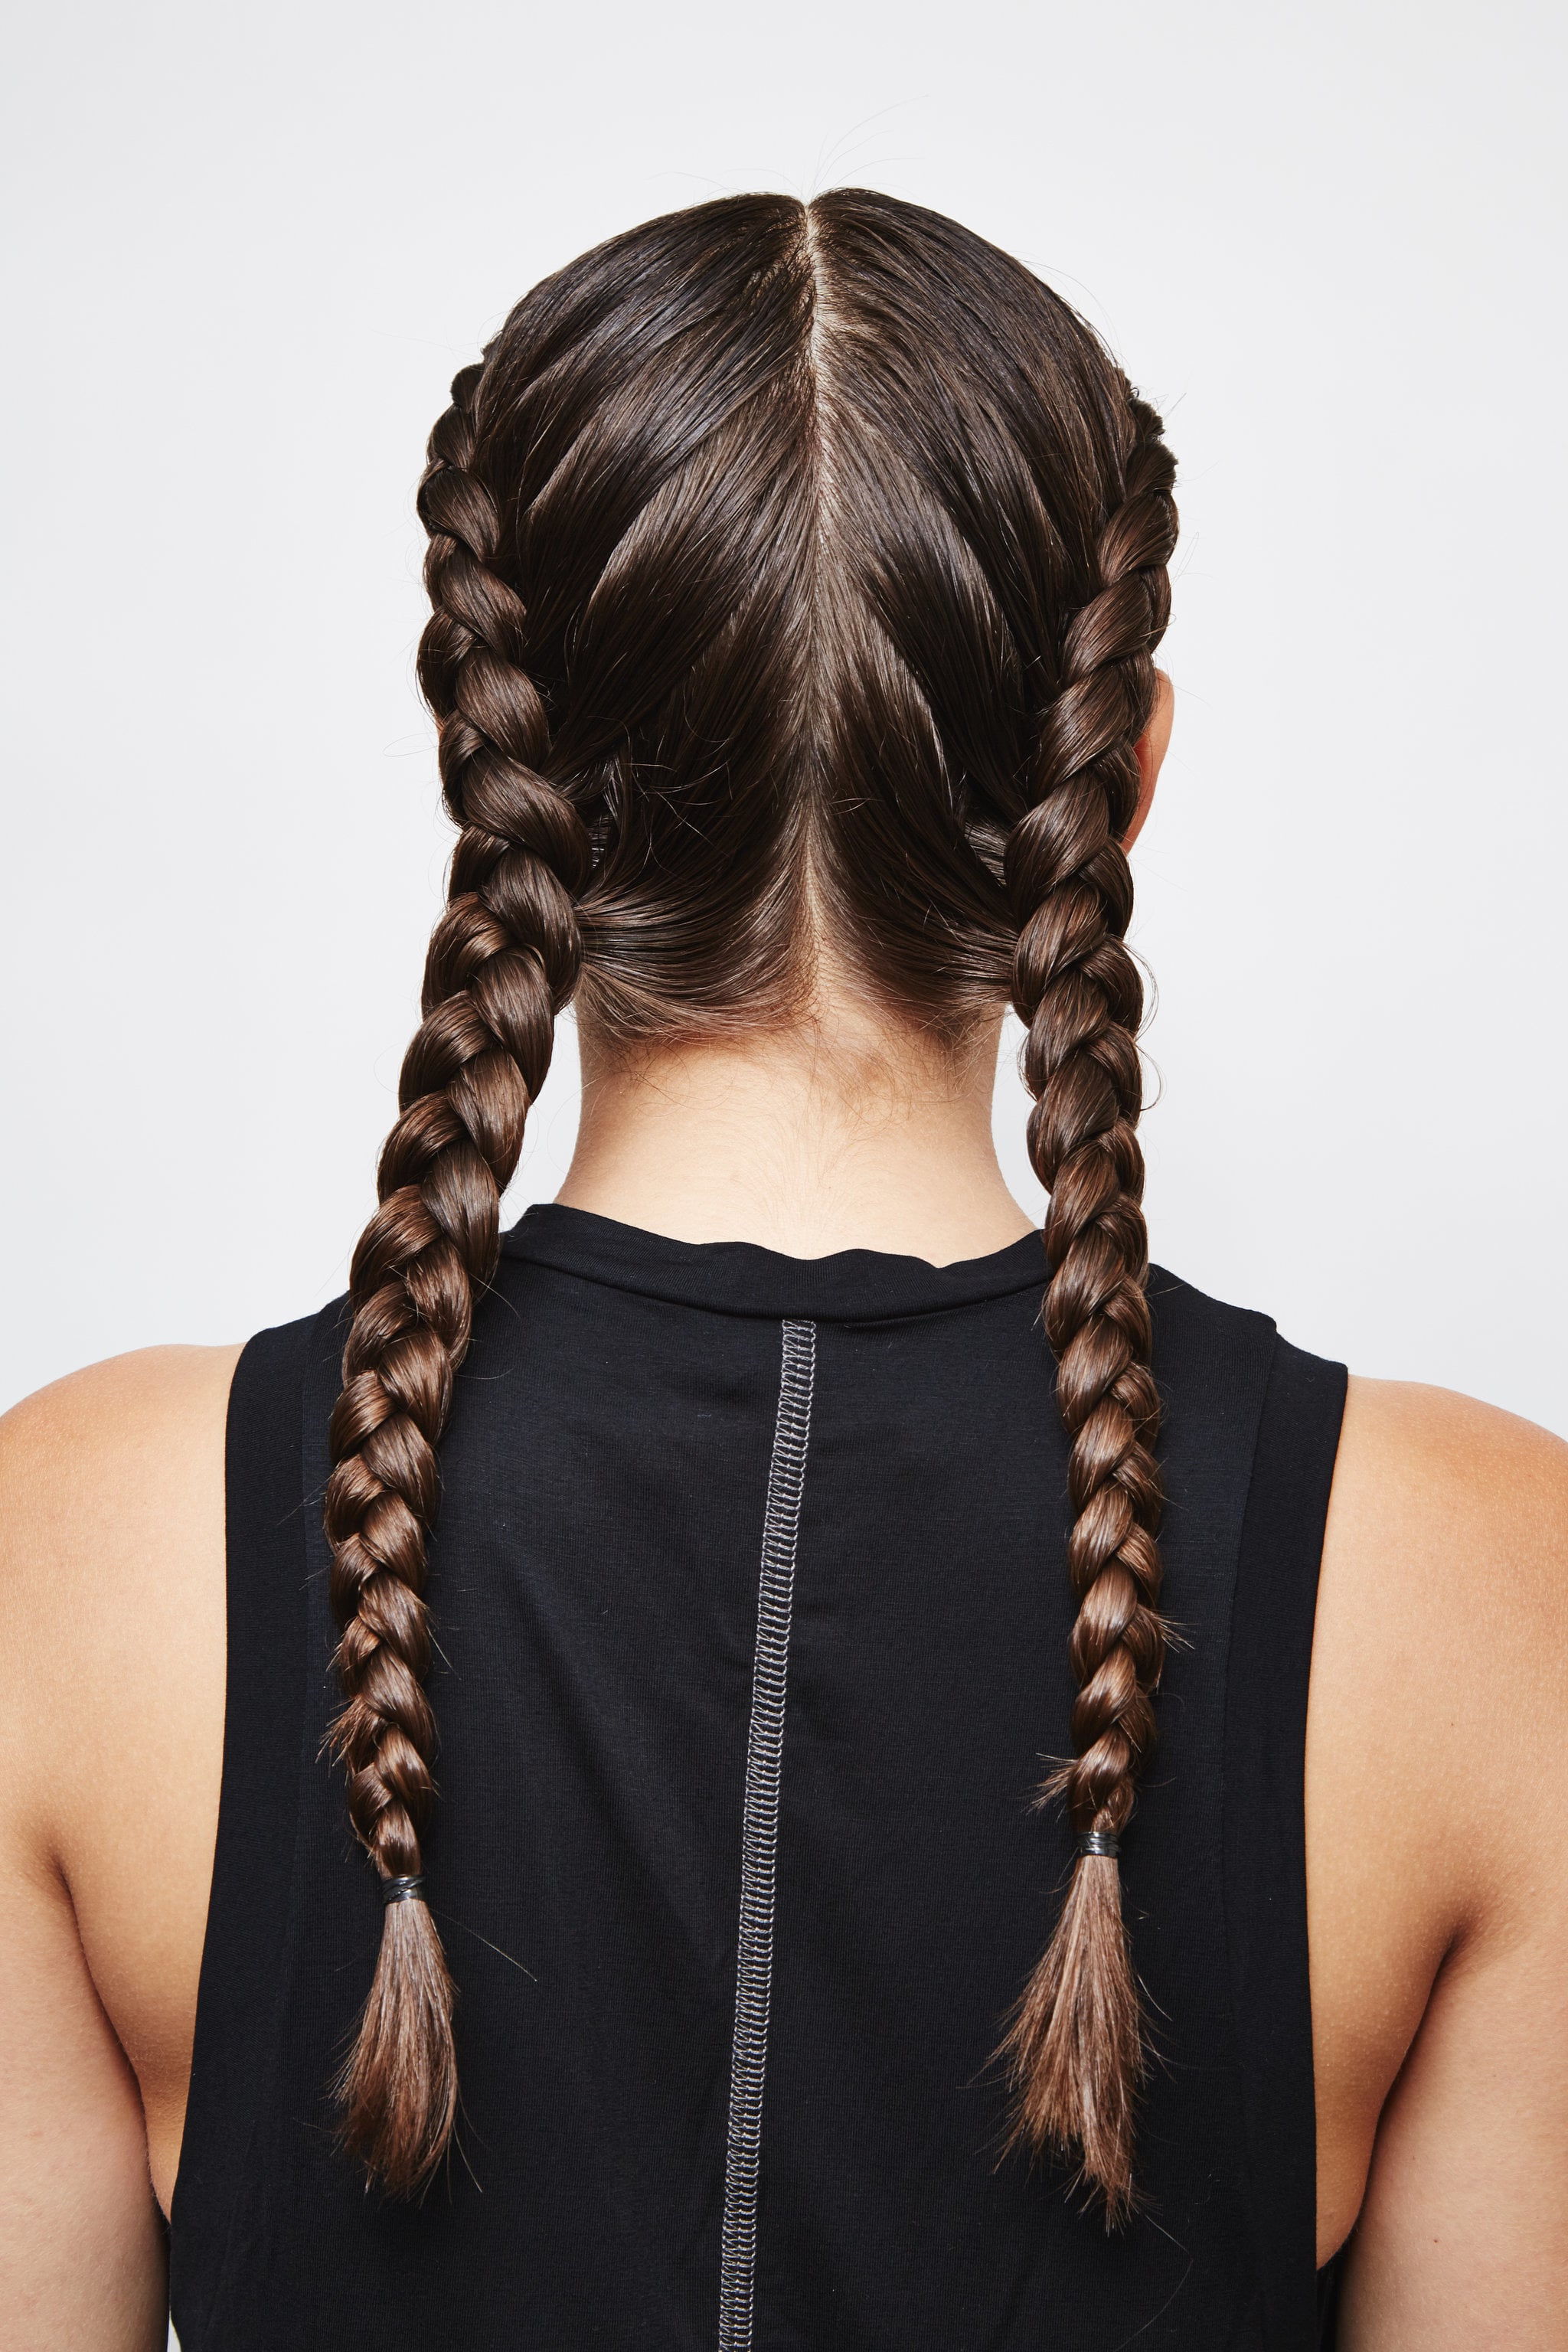 Popsugar Beauty Pertaining To Recent Three Strand Pigtails Braided Hairstyles (Gallery 14 of 20)